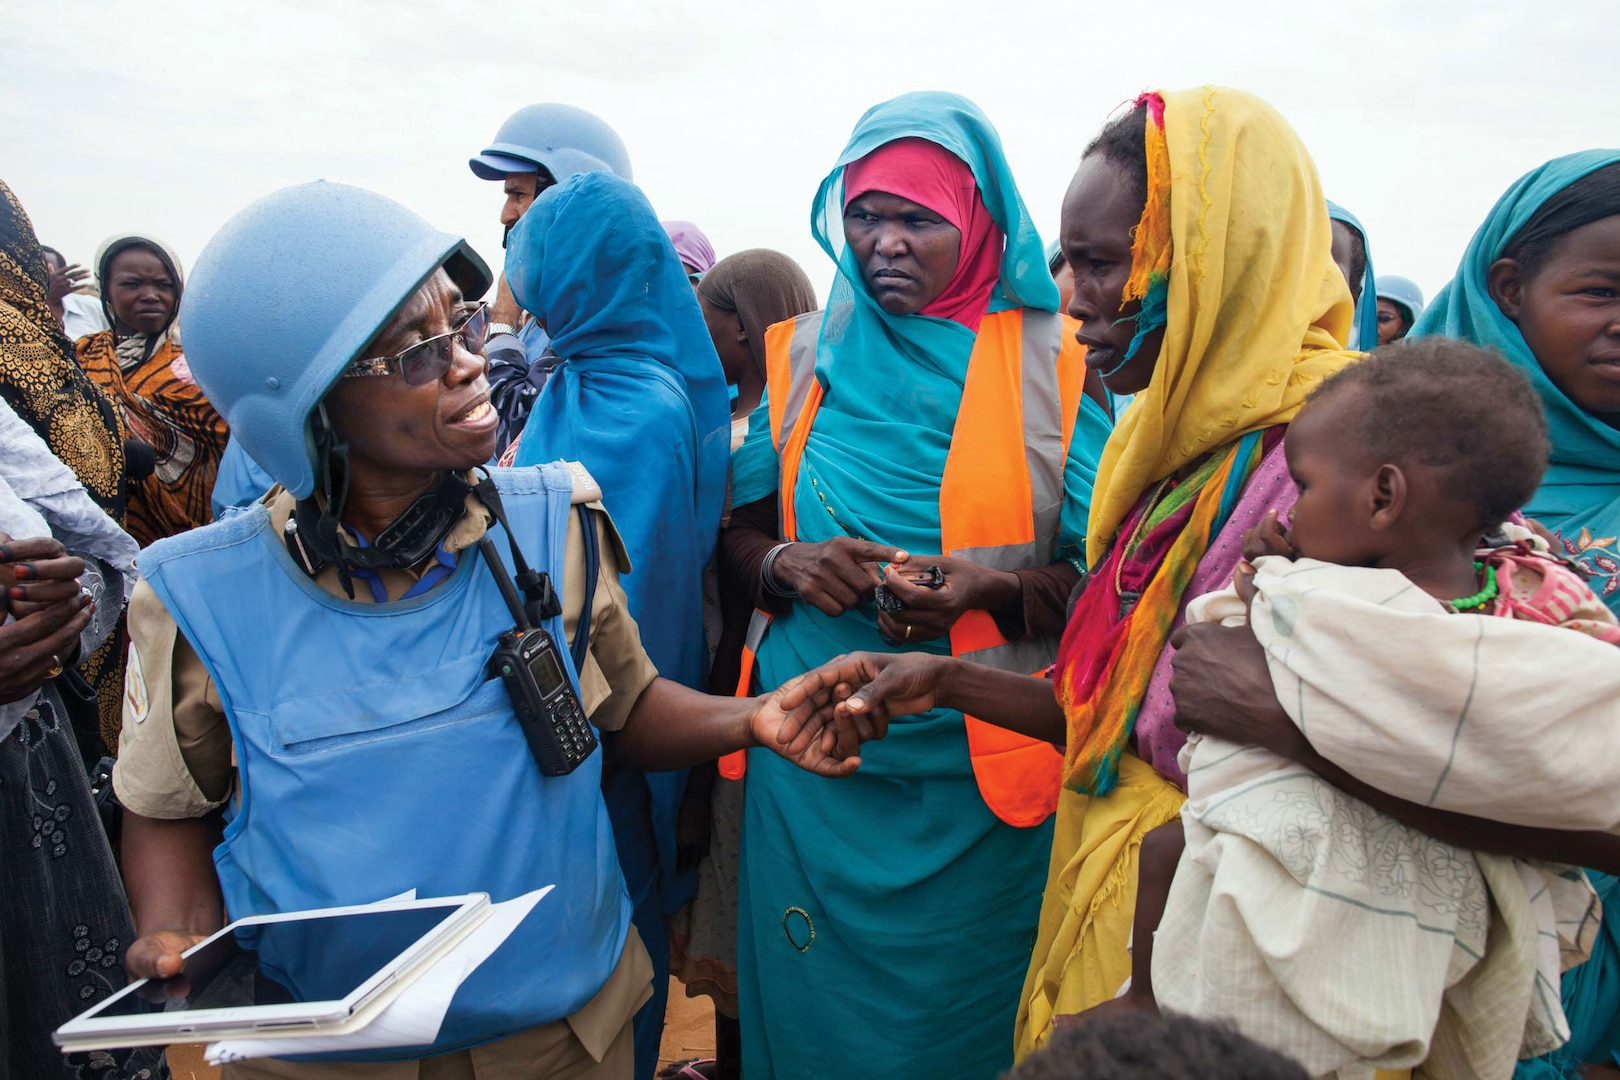 Community policing volunteers bridge divides in Darfur. In the Zam Zam camp for Internally Displaced People in North Darfur, UNAMID police officer Grace Ngassa, from Tanzania (left), and Community Policing Volunteer Jazira Ahmad Mohammad (center) interact with a woman and her child (right).